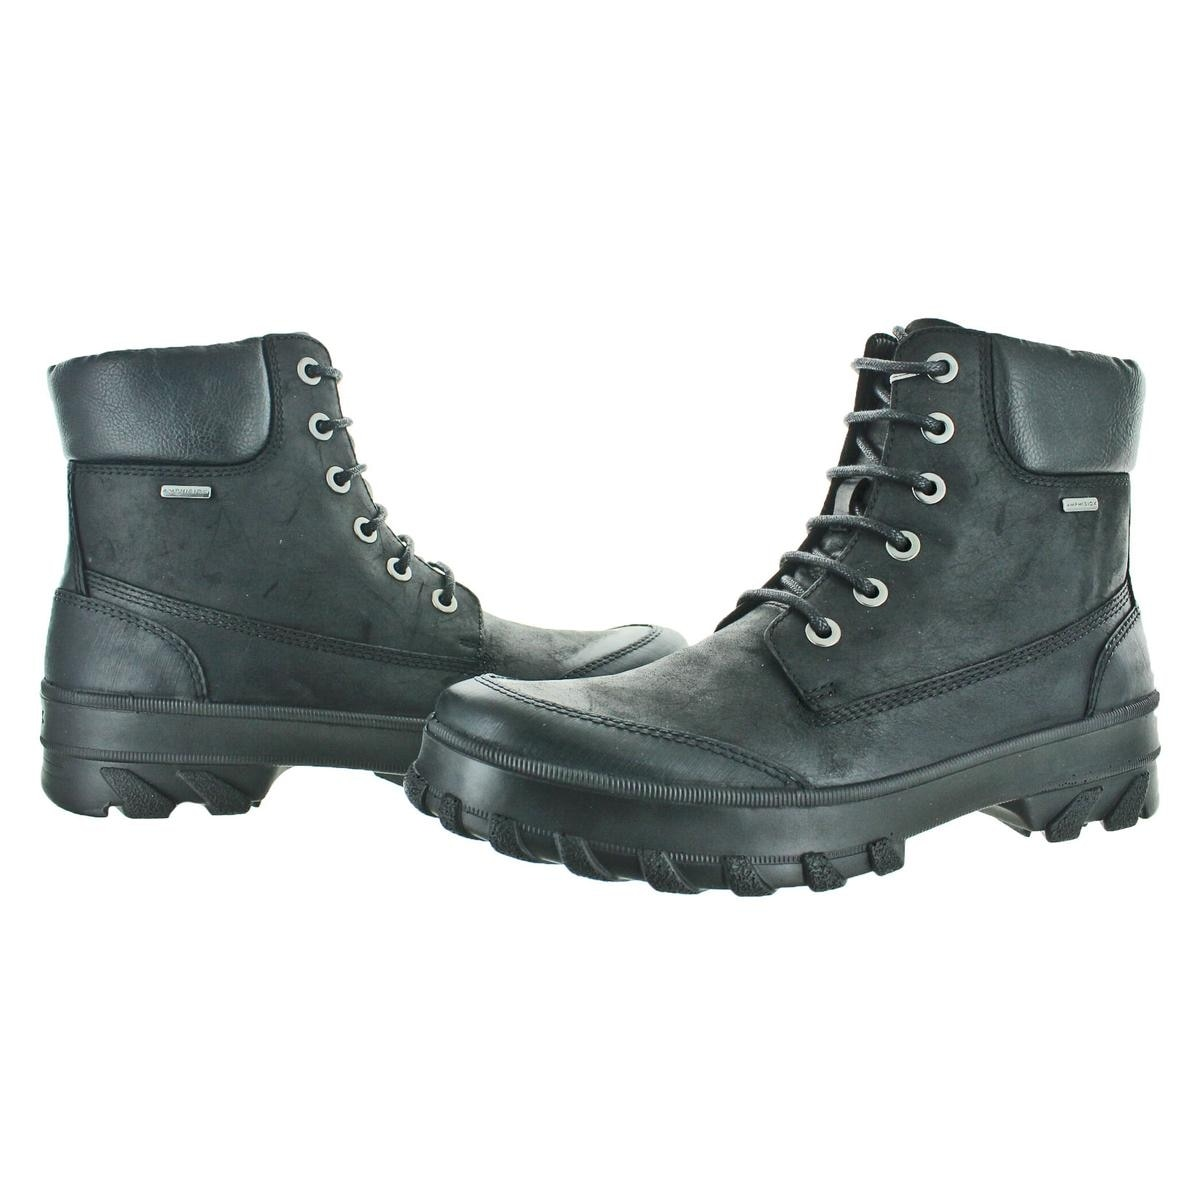 GEOX FOOTWEAR COLLECTION: ITALIAN SHOES WITH BREATHABLE